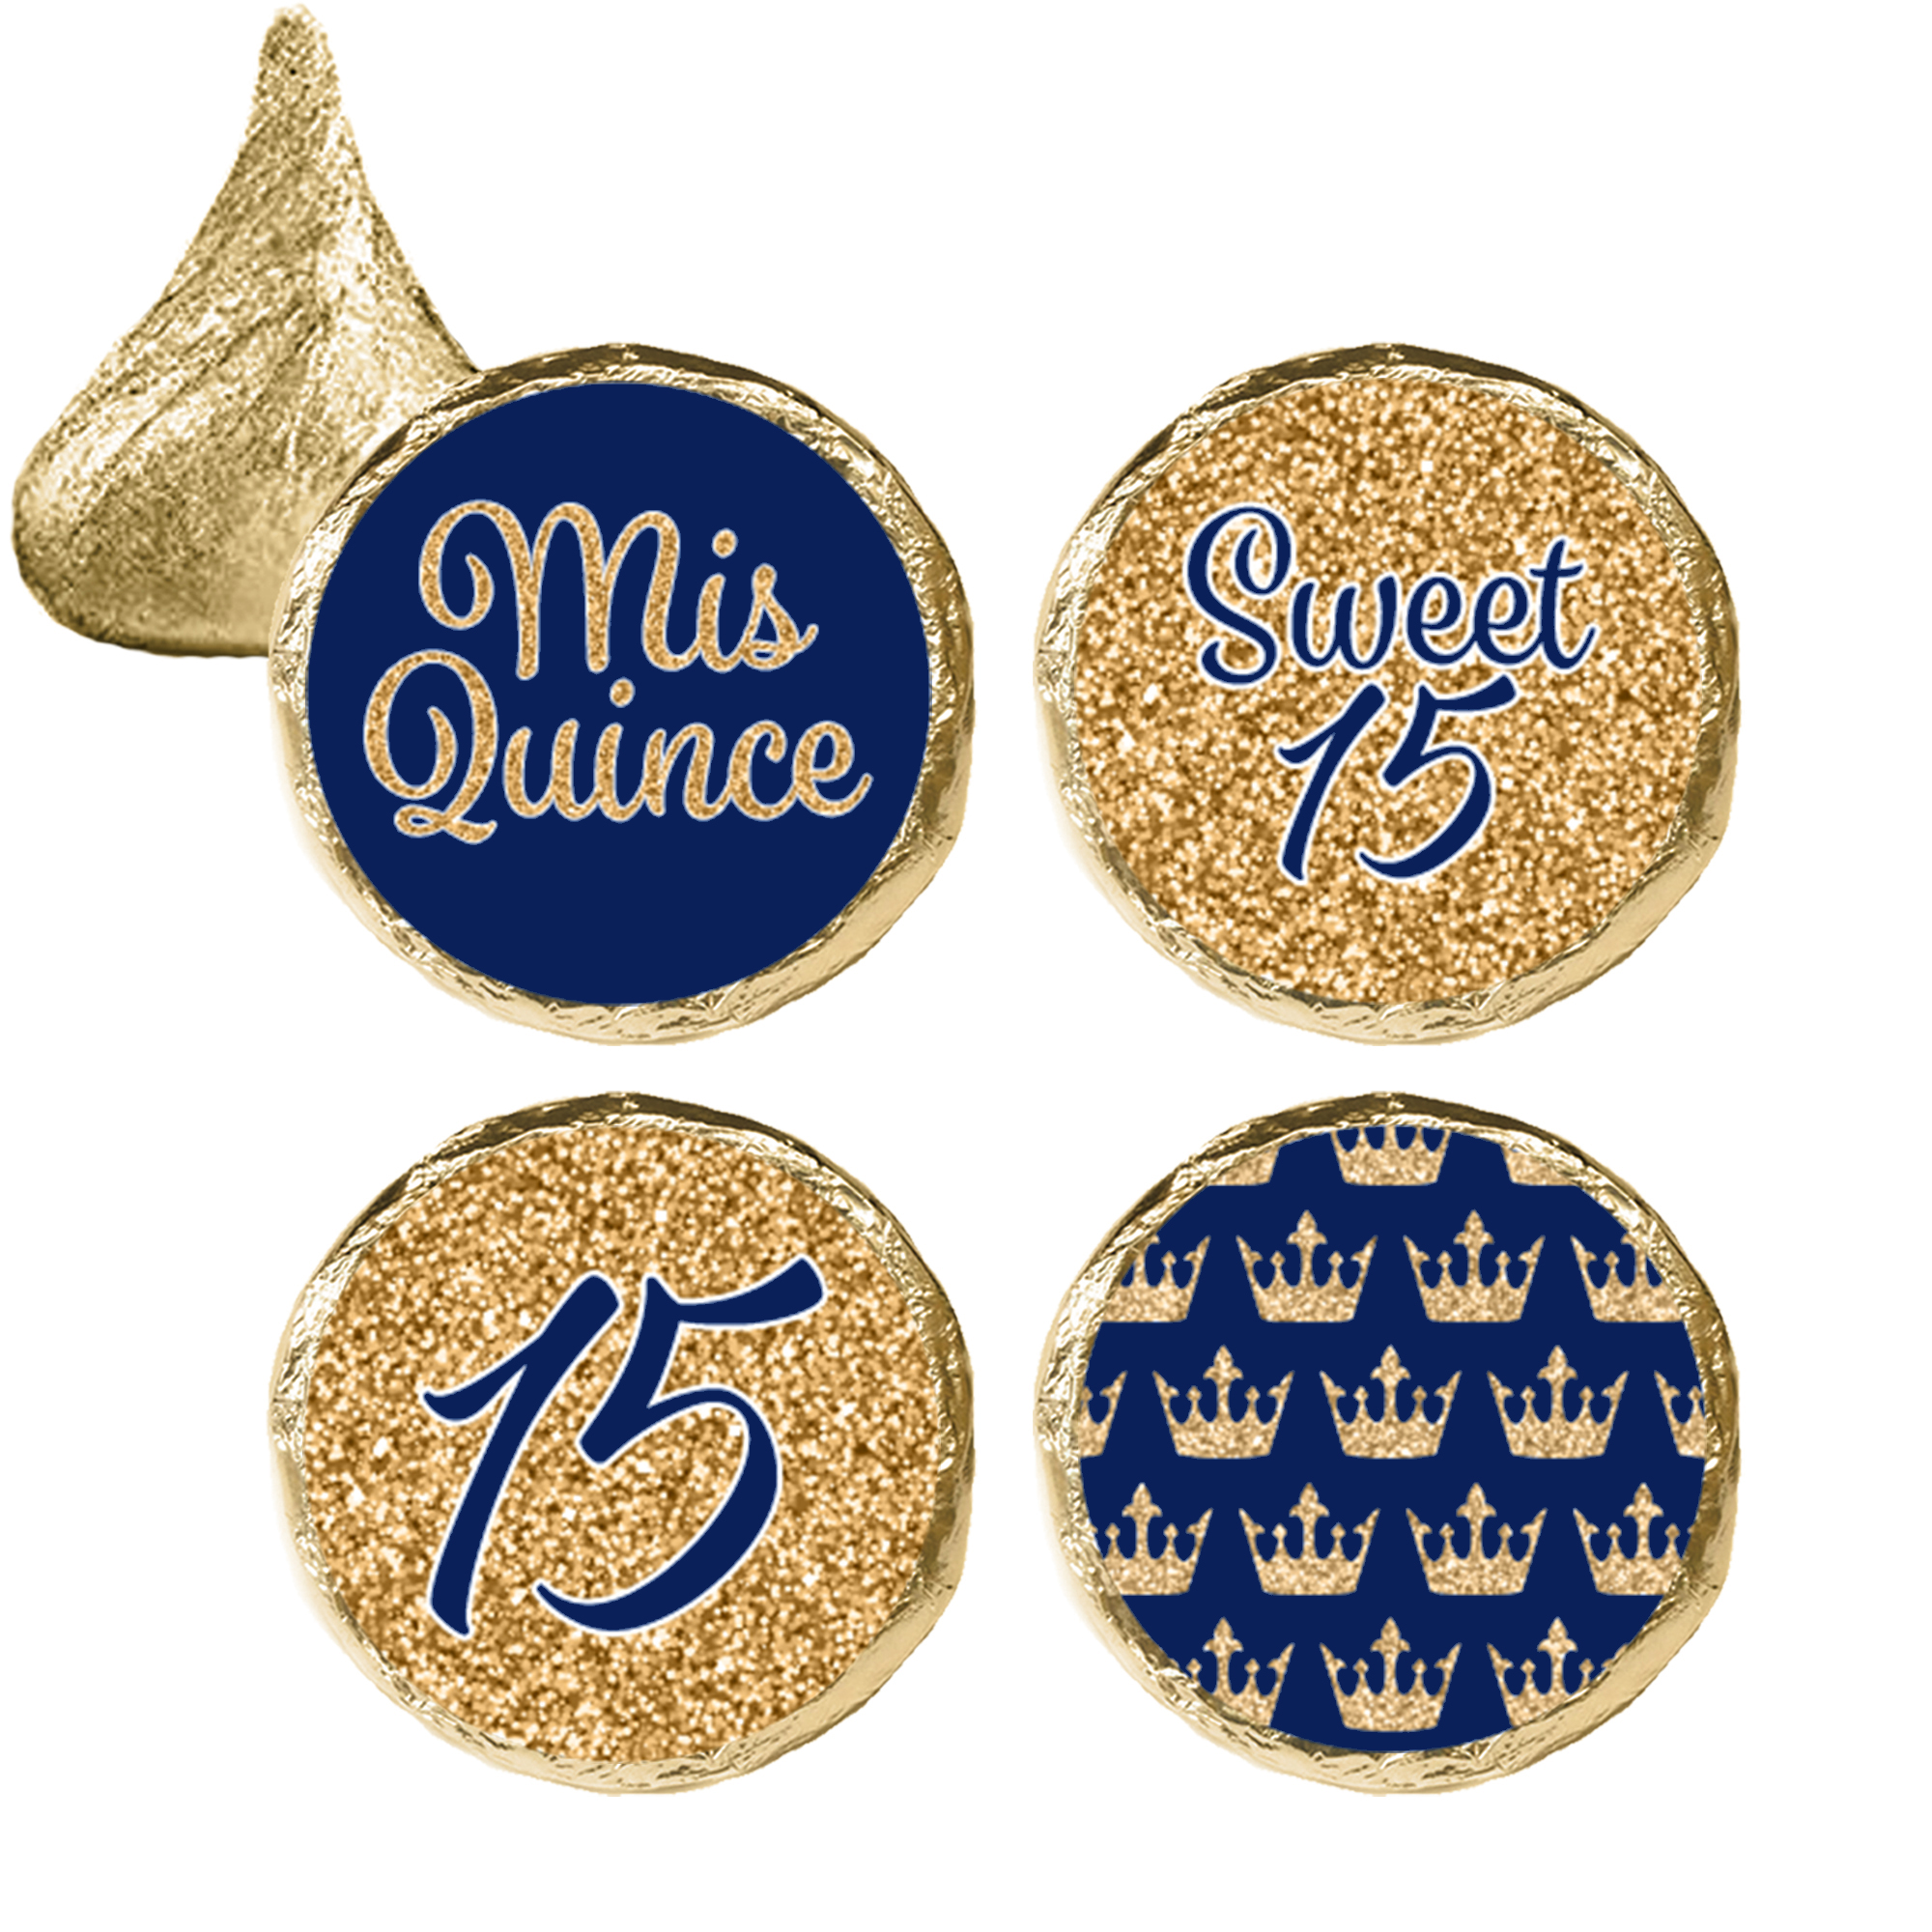 Quinceanera Party Favor Stickers, 324ct - Sweet 15 Princess Crowns Quinceanera Party Favors Navy Blue and Gold Decorations - 324 Count Stickers